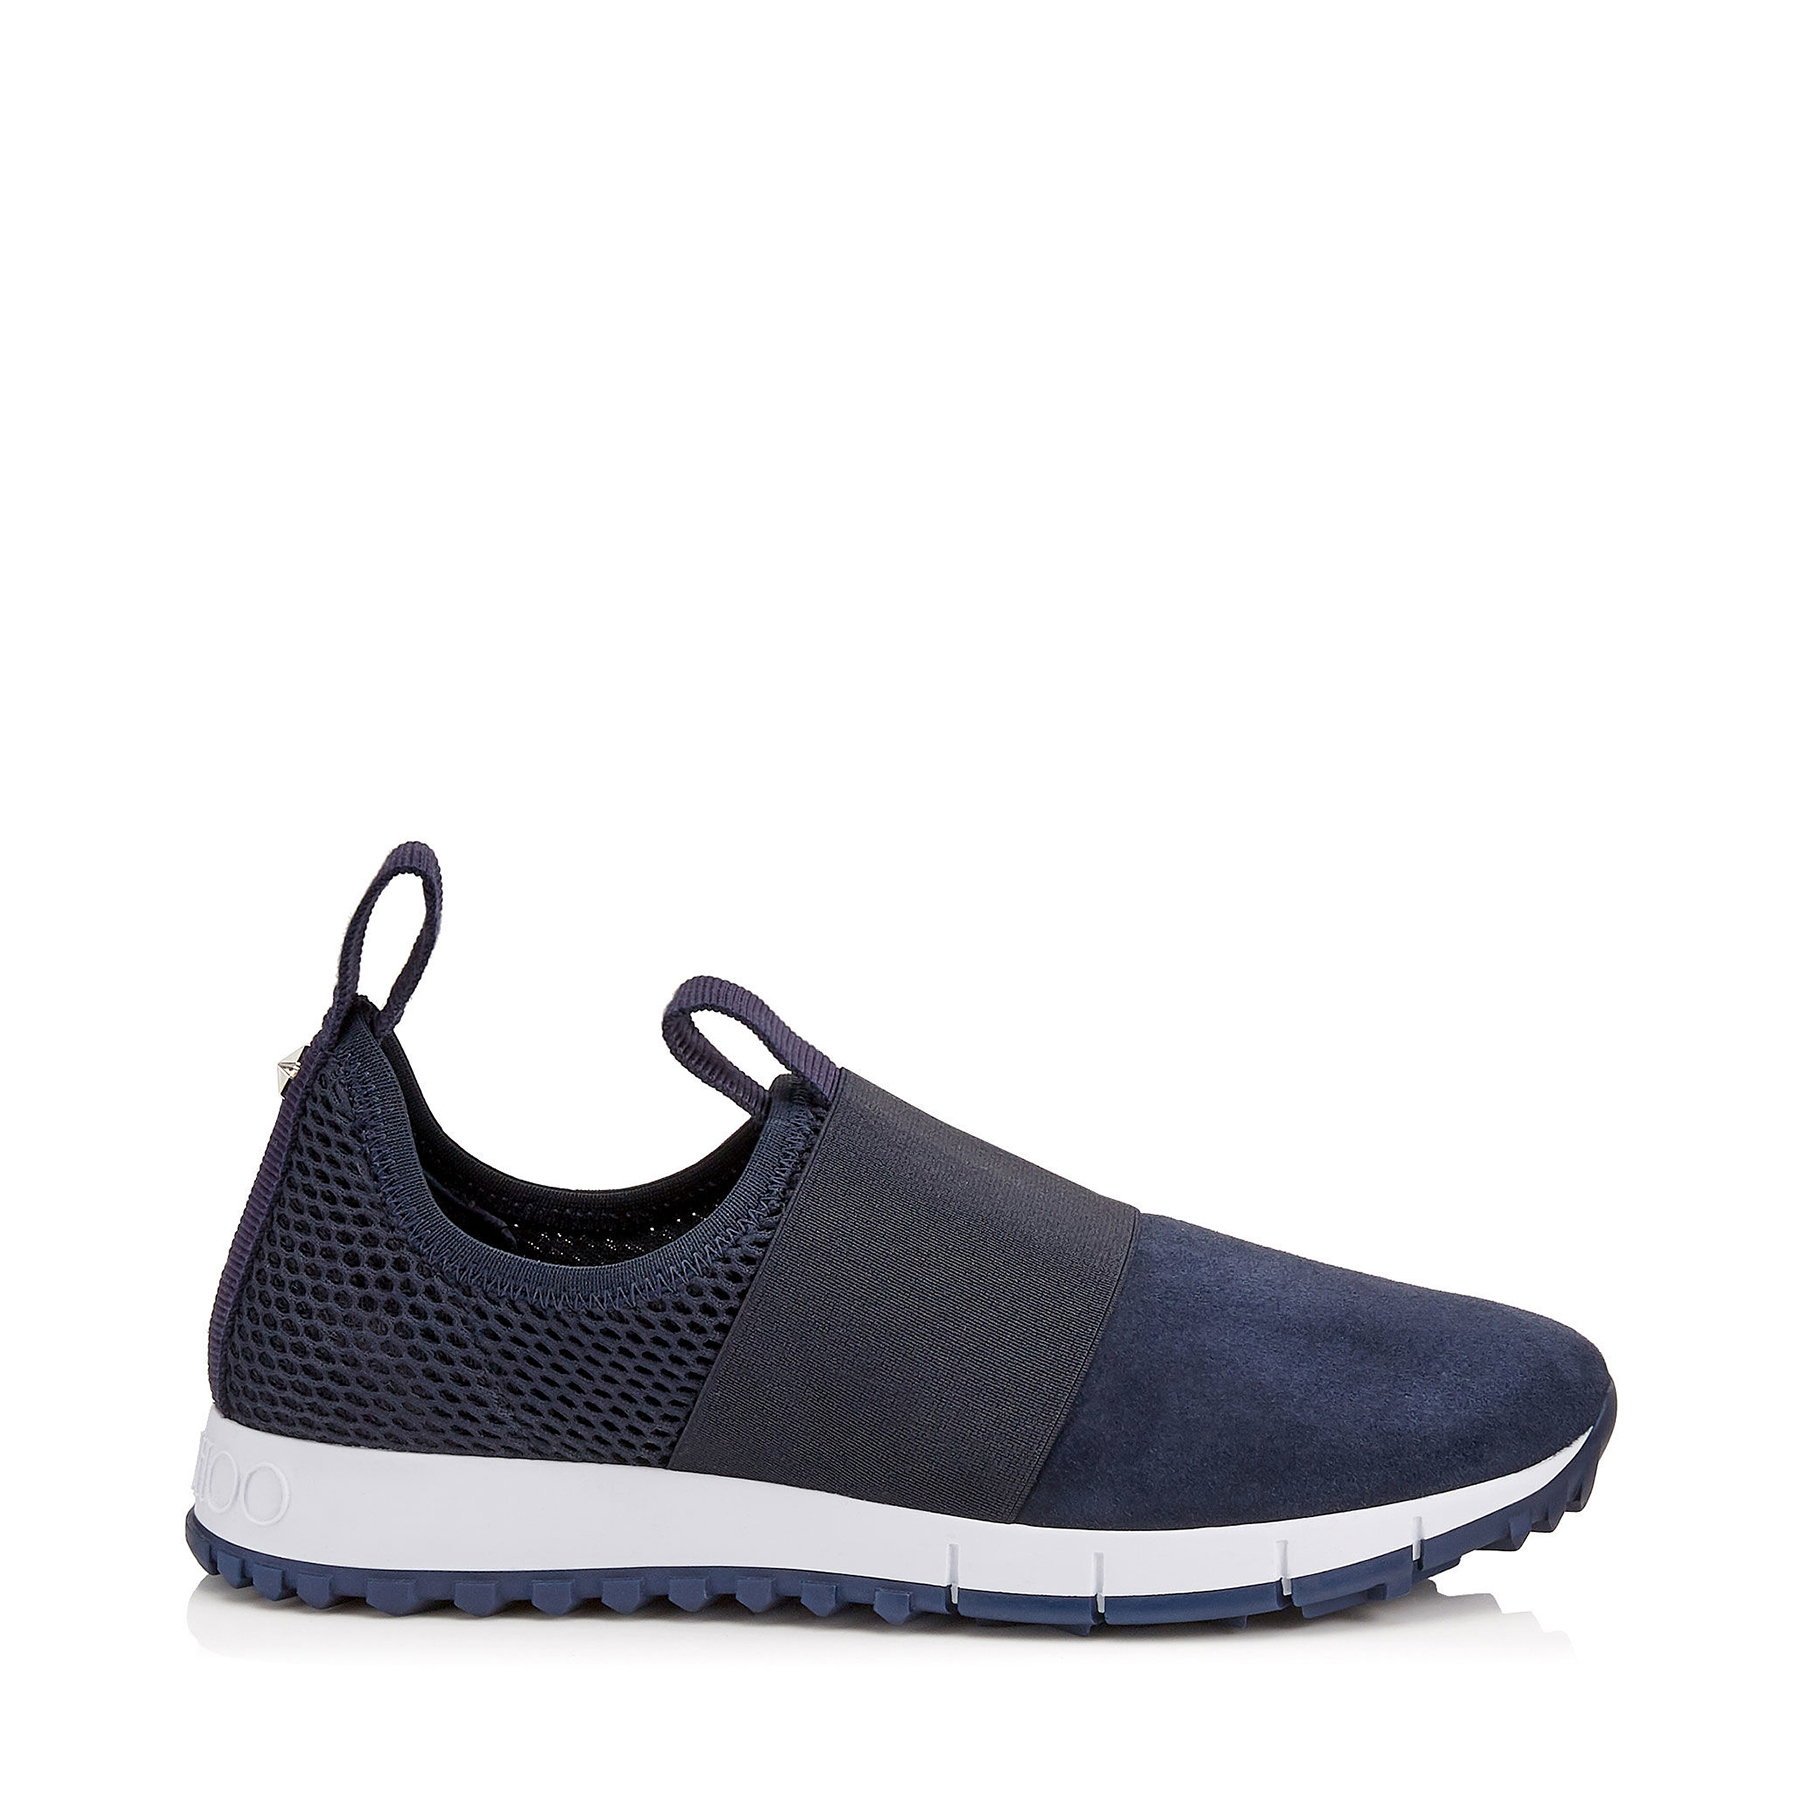 OAKLAND/F Navy Mesh and Suede Trainers by Jimmy Choo